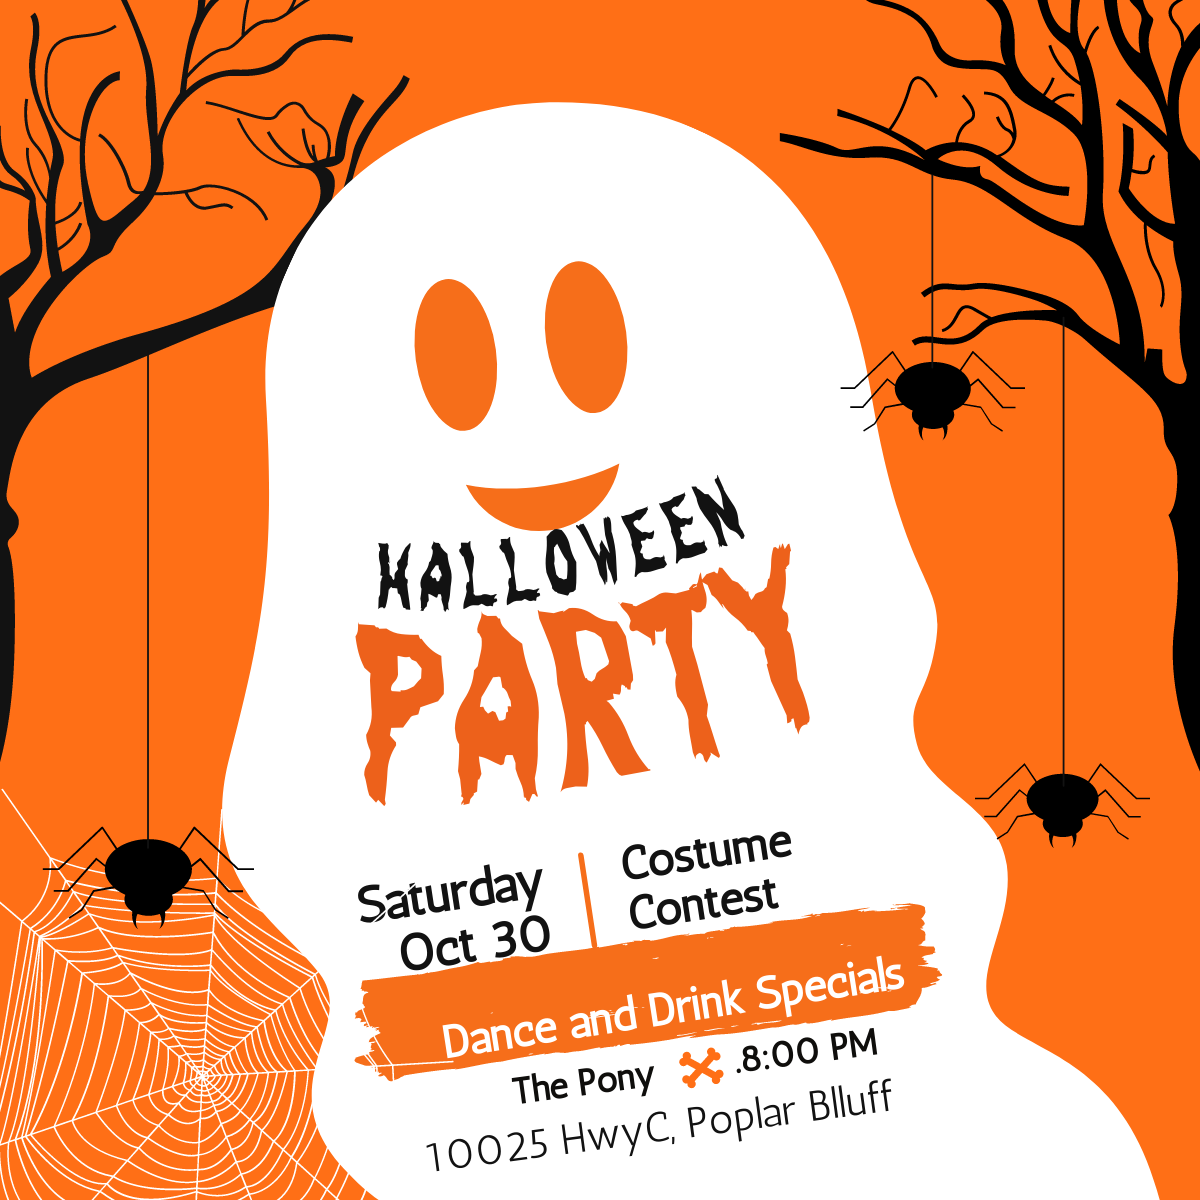 We hope to see everyone at our Halloween Party on Oct 30! Drink and dance specials all night, and a COSTUME CONTEST! Come and scare up a little fun!  . . . #HalloweenParty #CostumeContest #PonyParty #DrinkSpecials #Ghouls #ThePony #PoplarBluff #StripJoint